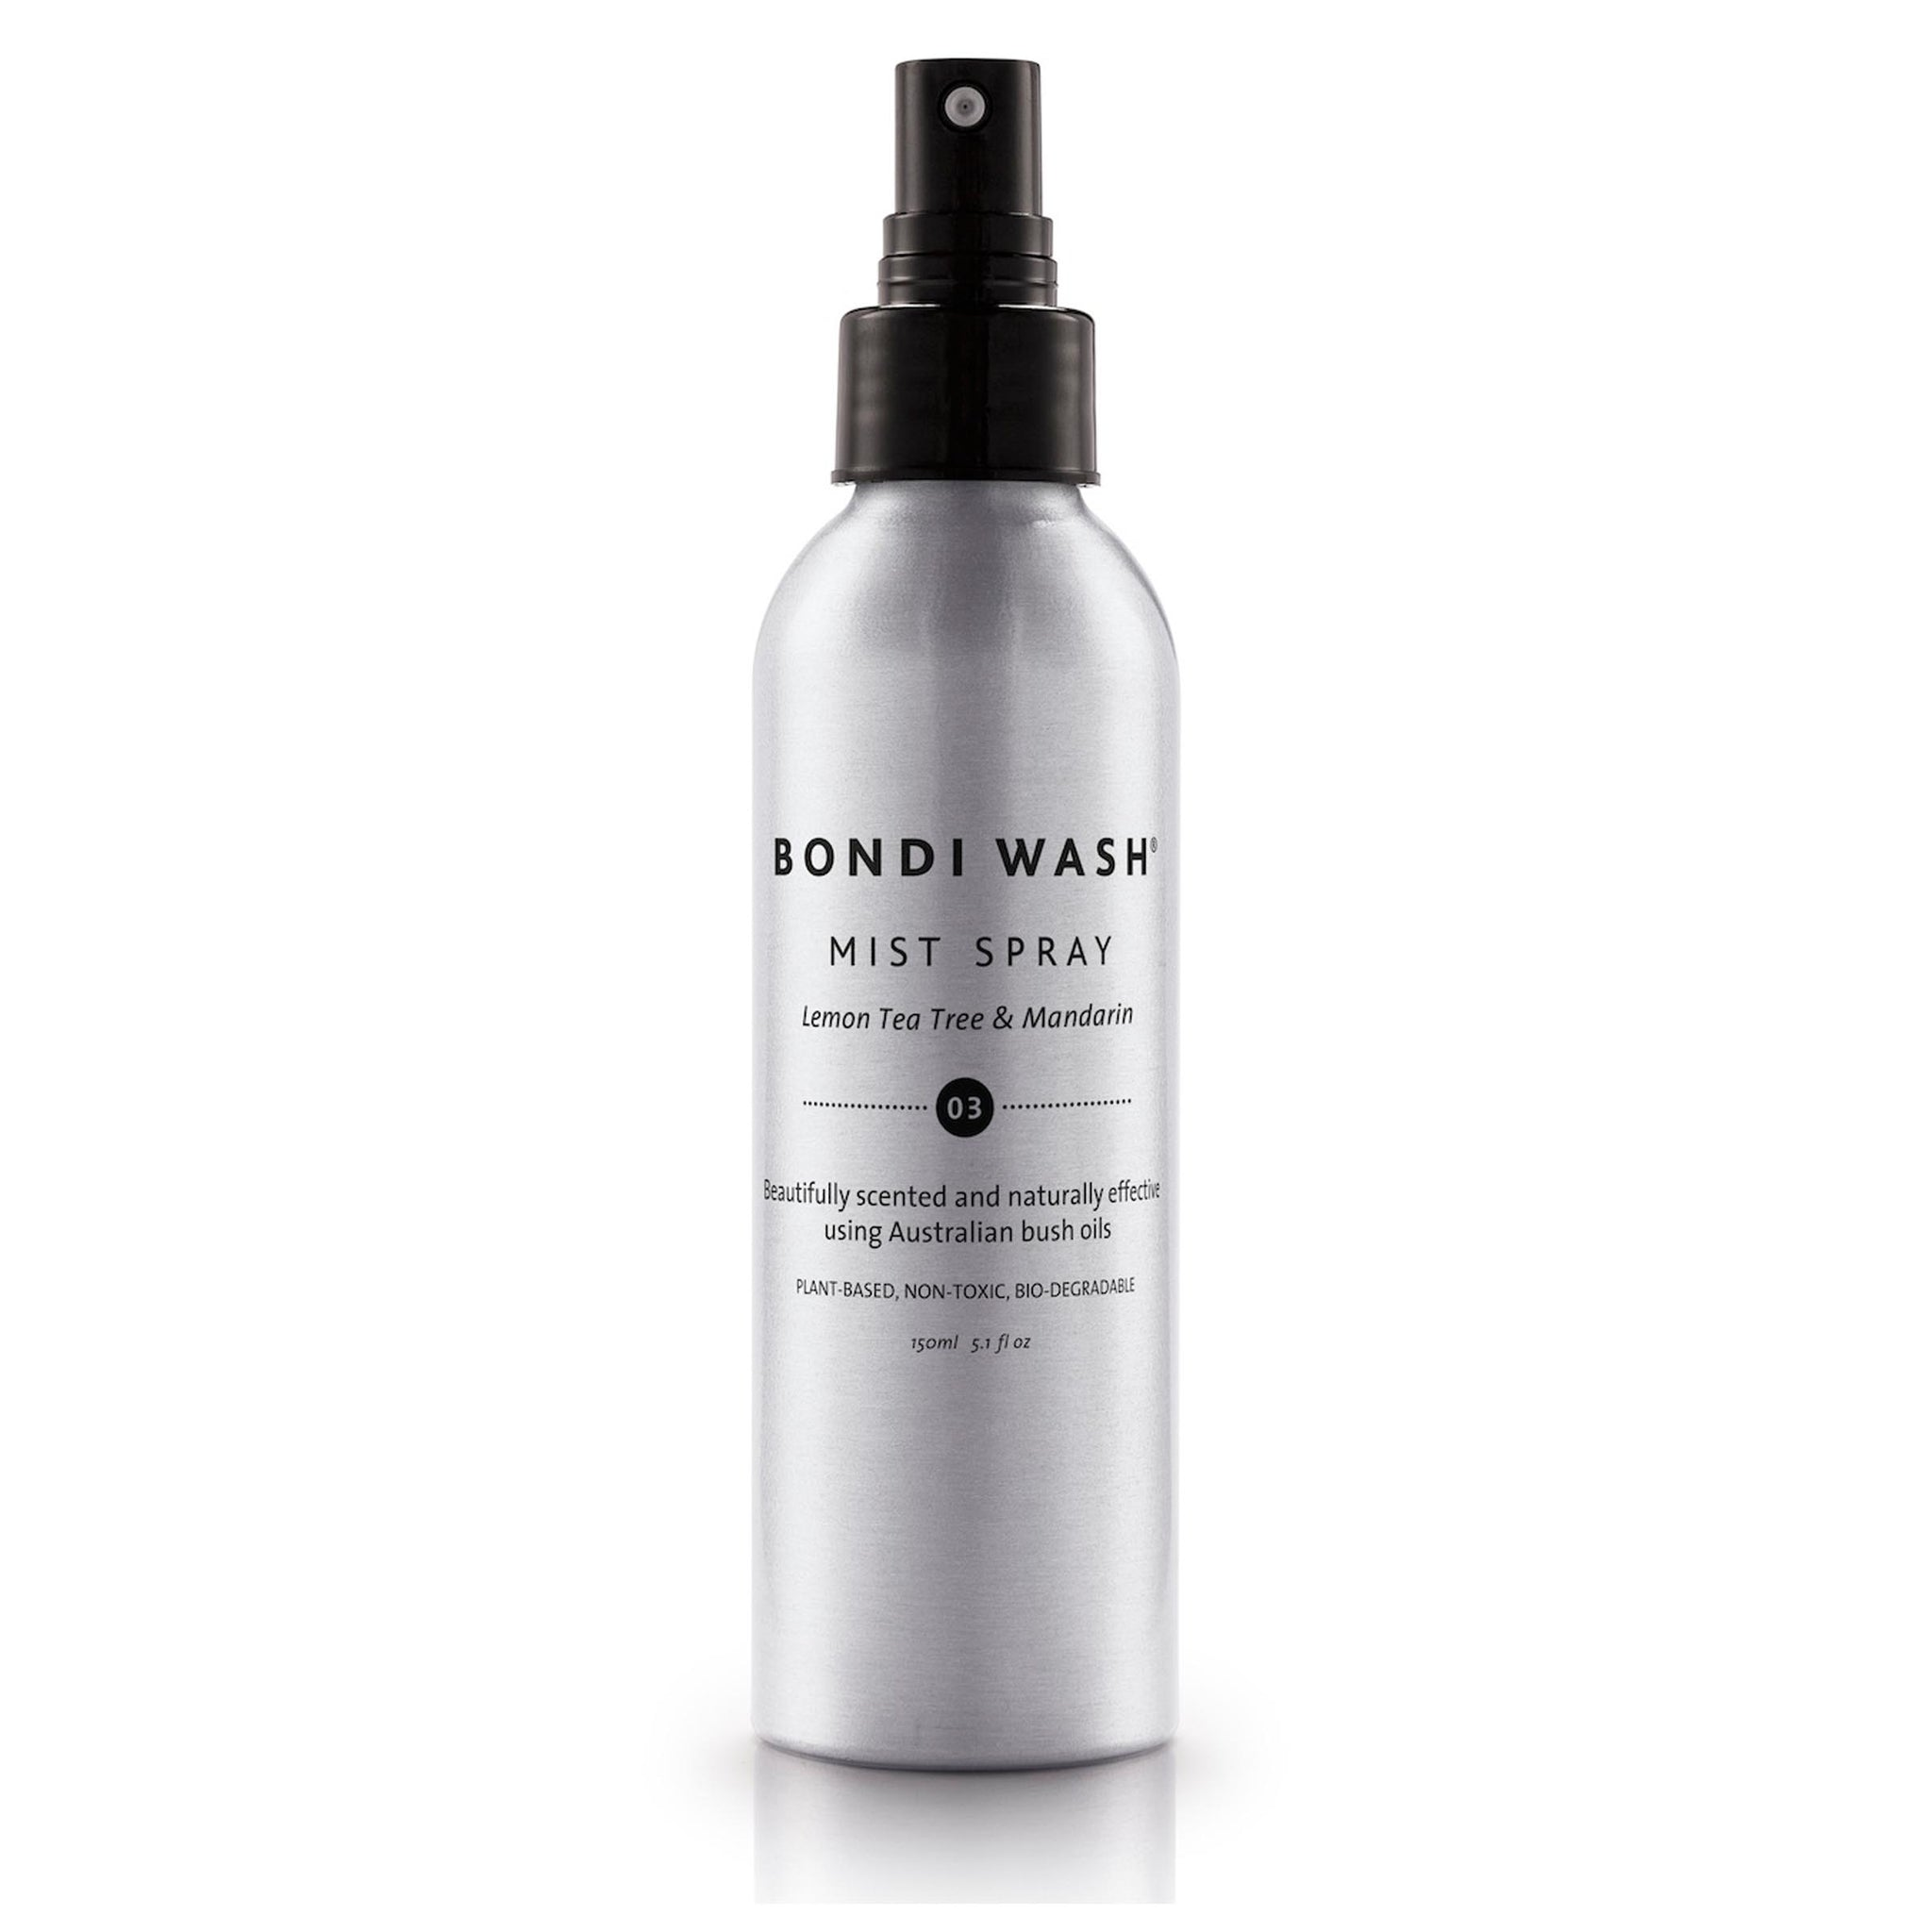 Bondi Wash, Mist Spray, Sanitizer, Multi Puprose Mist Spray, Tasmanian Pepper, Lavender, australian botanicals, home & cleaning, eco clean, sustainable living, home care, hand sanitizer, refreshing, toxic free, cleaning